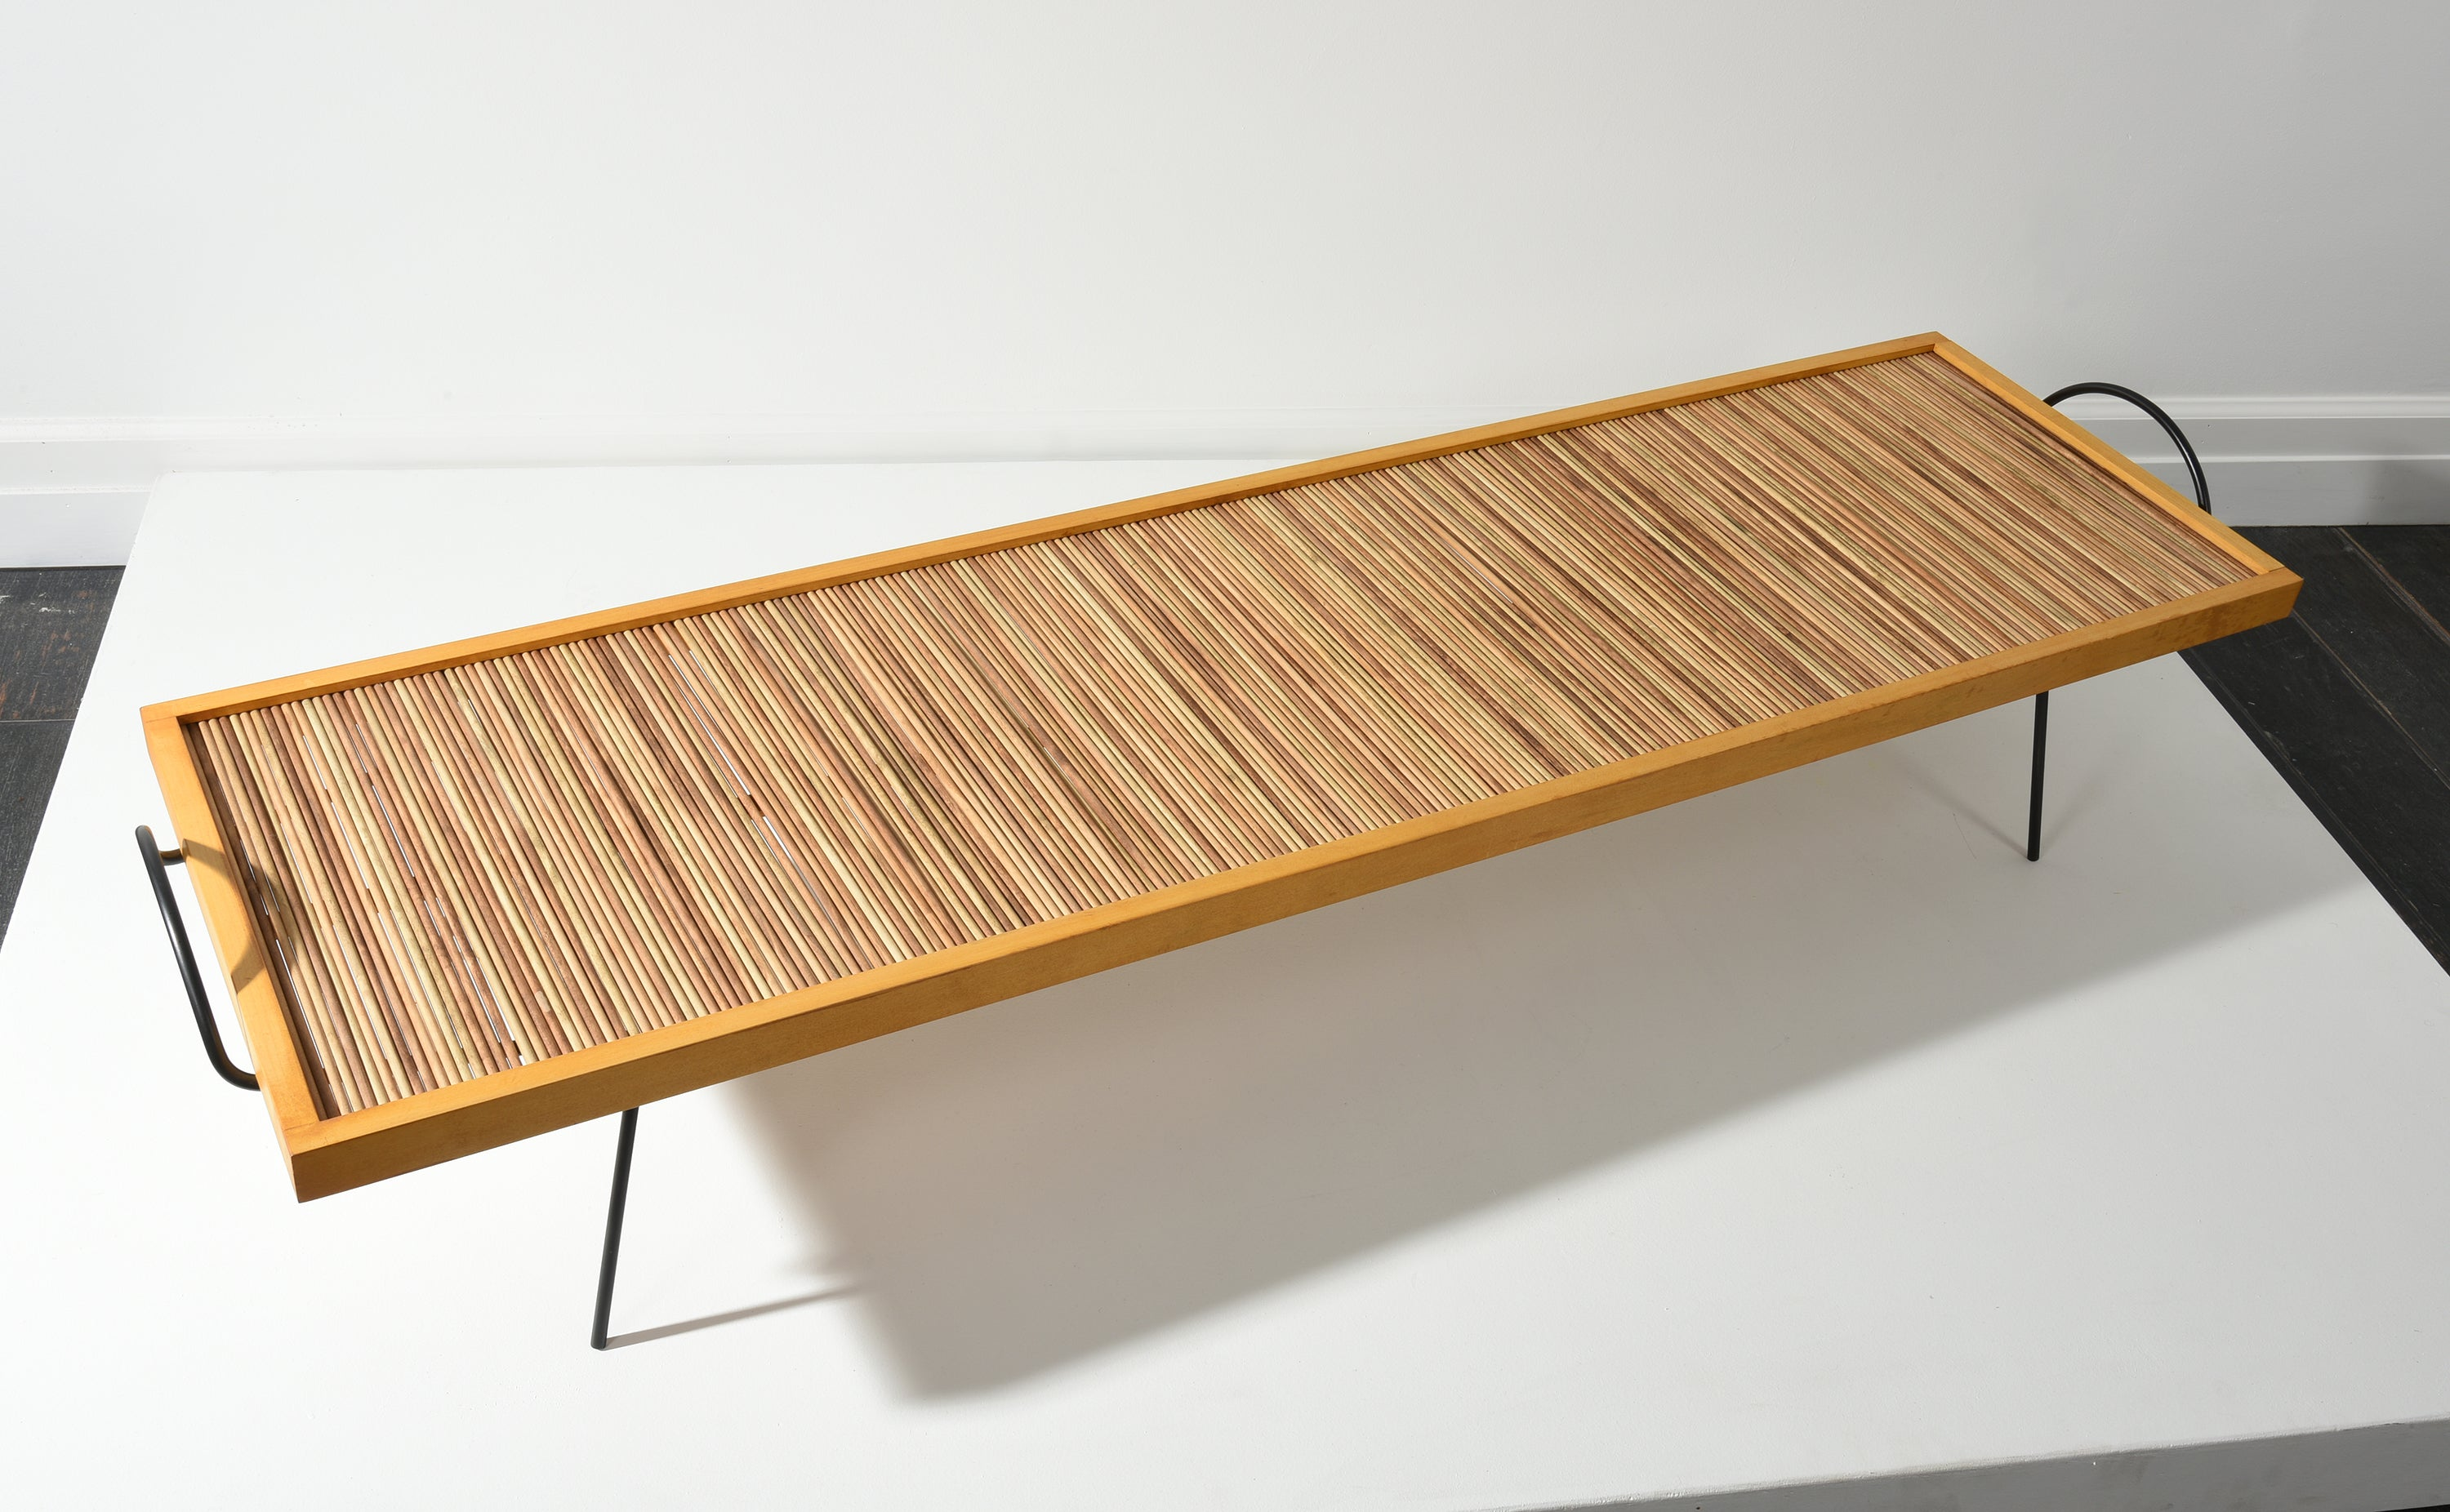 Laverne Table by William Katavolos, Ross Littell and Douglas Kelley, 1940s - The Exchange Int